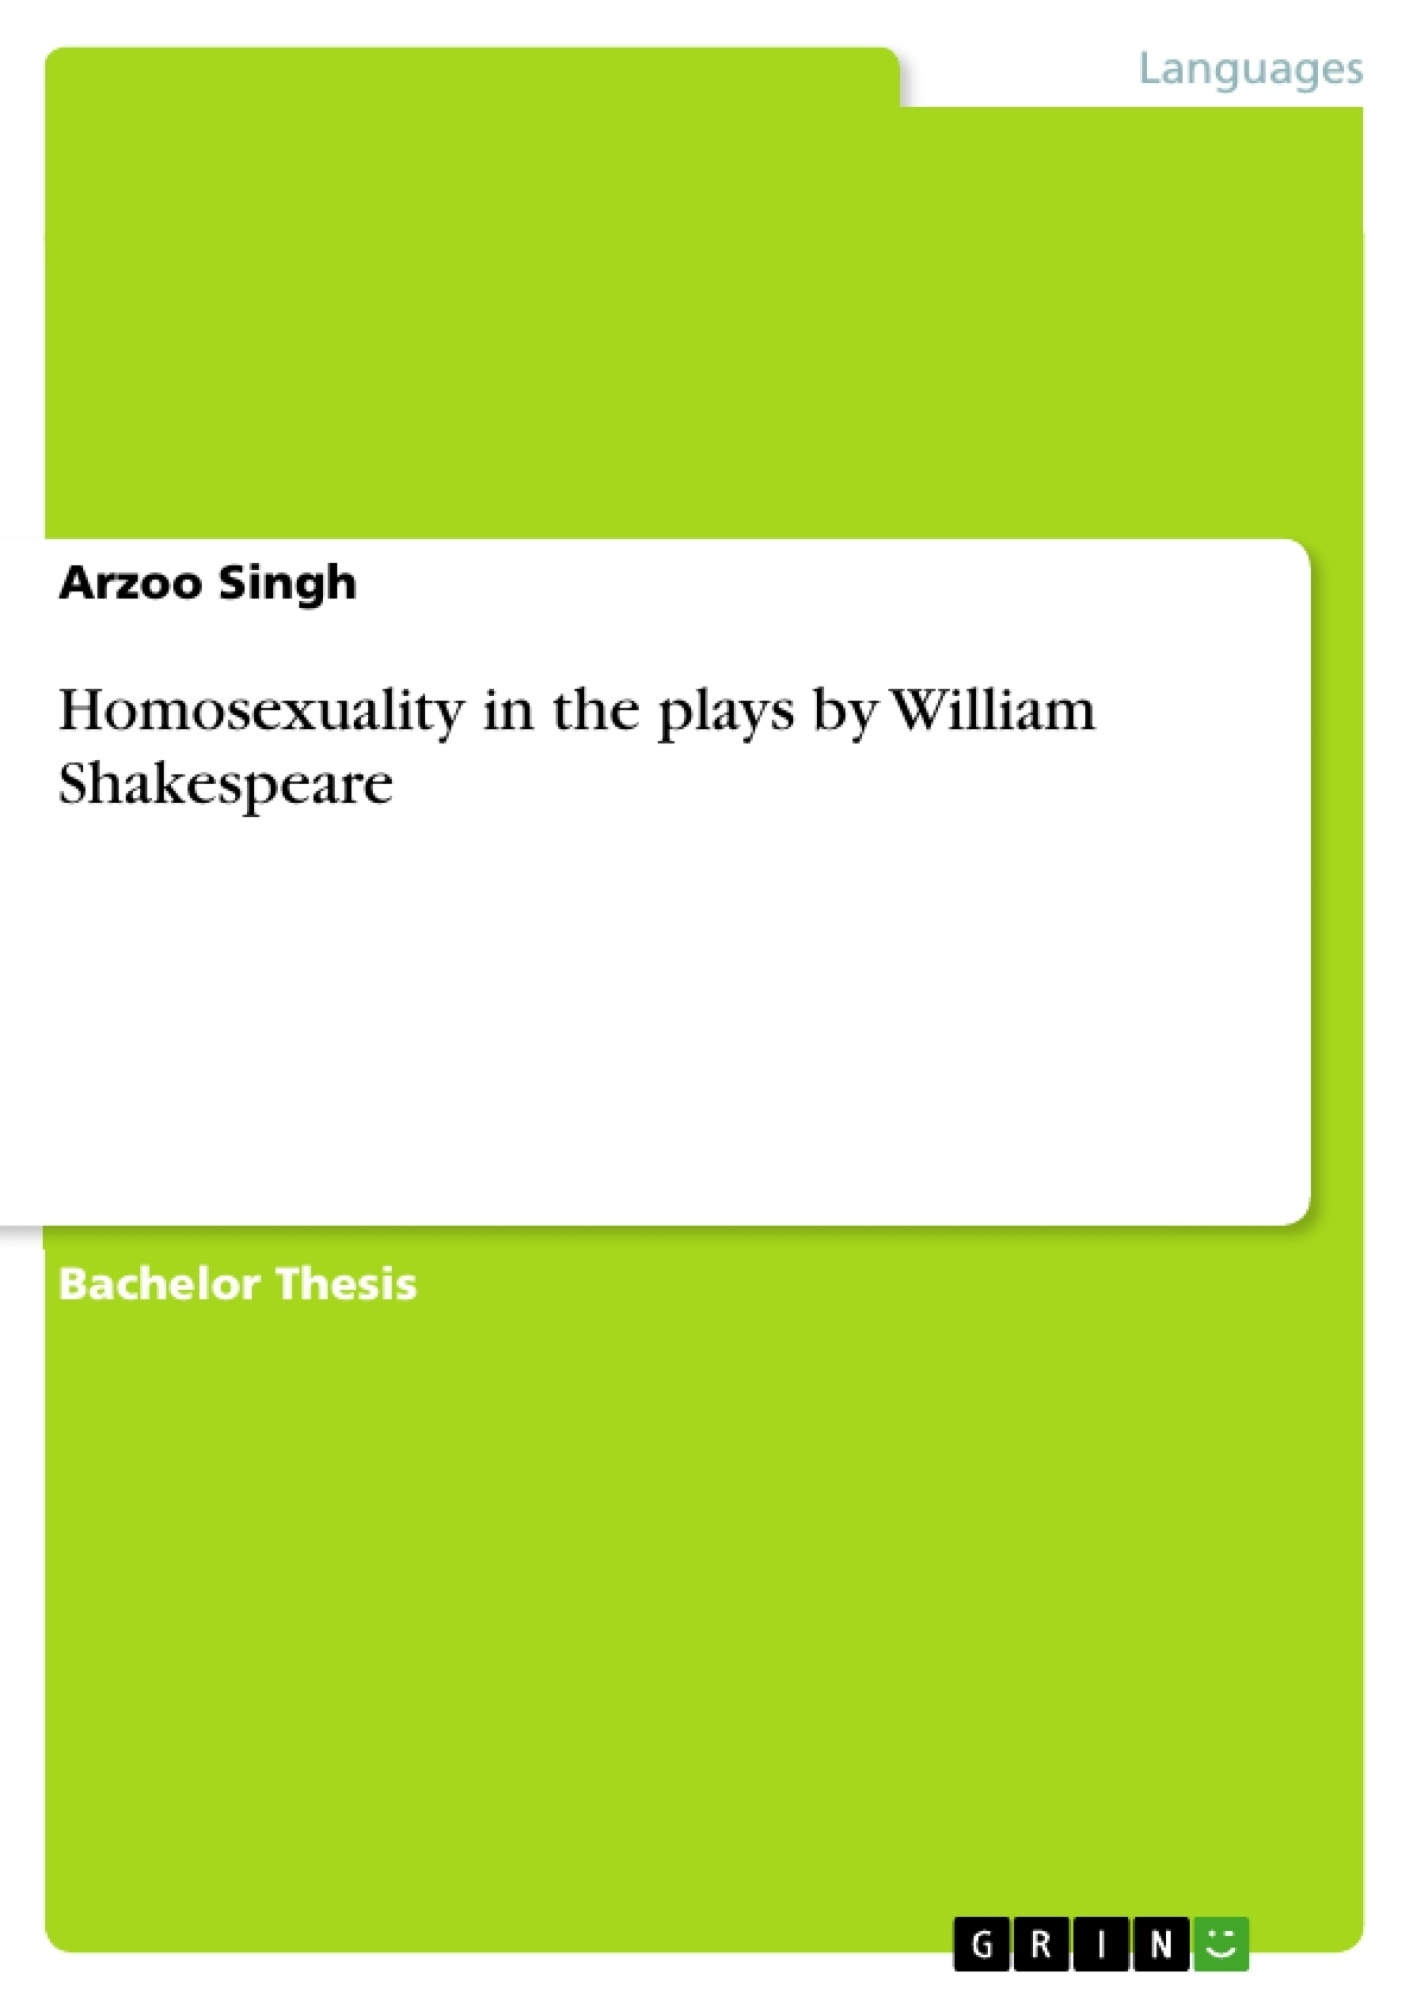 essay homosexuality in play shakespeare